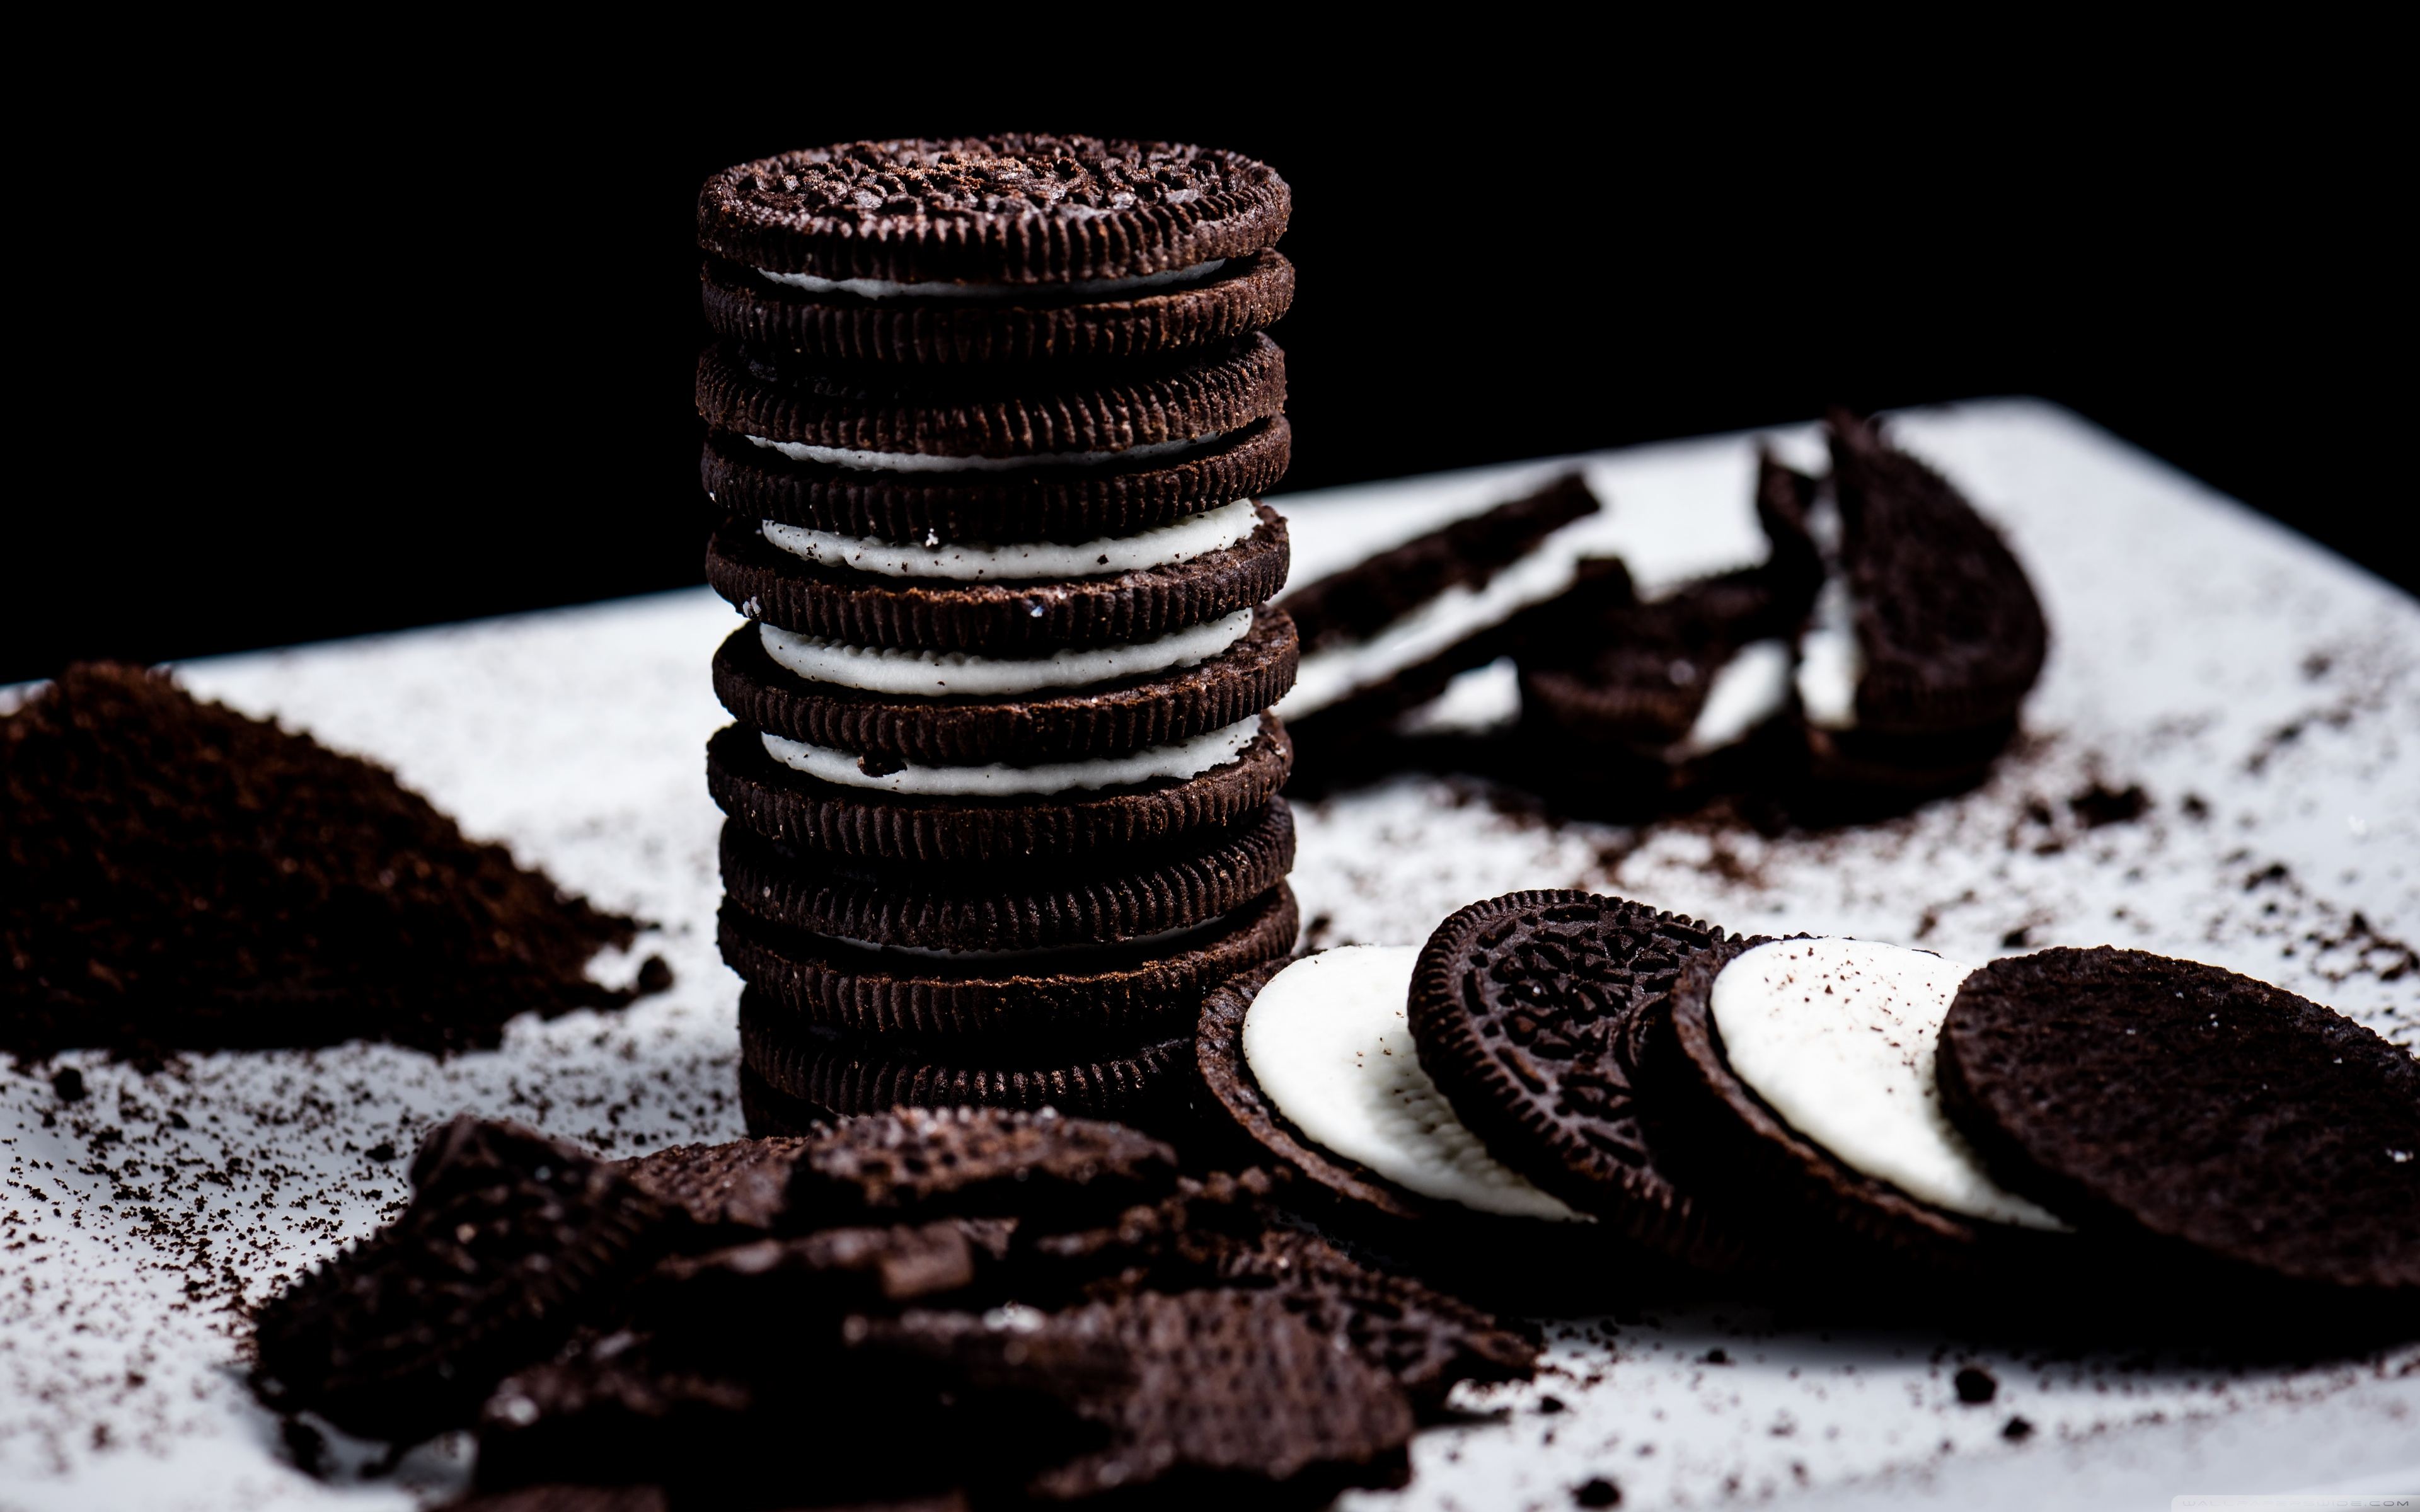 Wide 16 Oreo Android Wallpaper Hd 159280 Hd